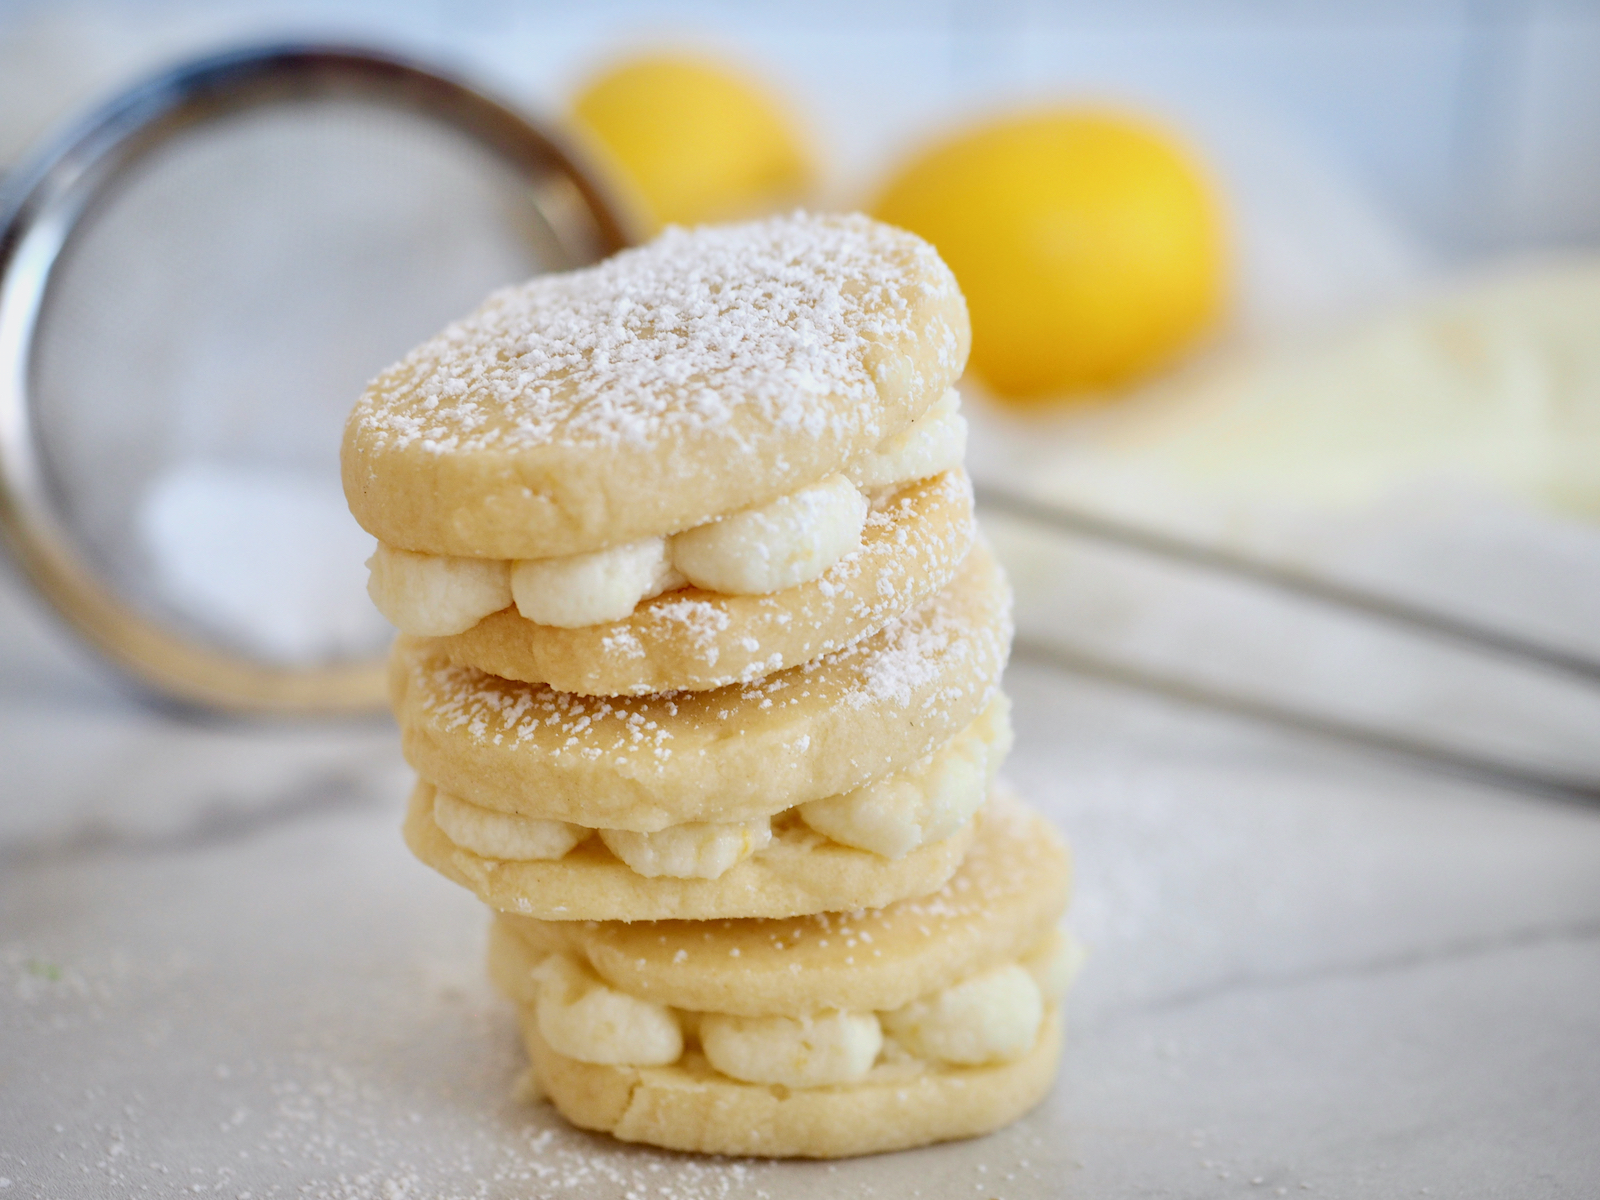 Lemon sandwich cookies three stacked on top of the other, with fresh lemons in background and seive with powdered sugar.